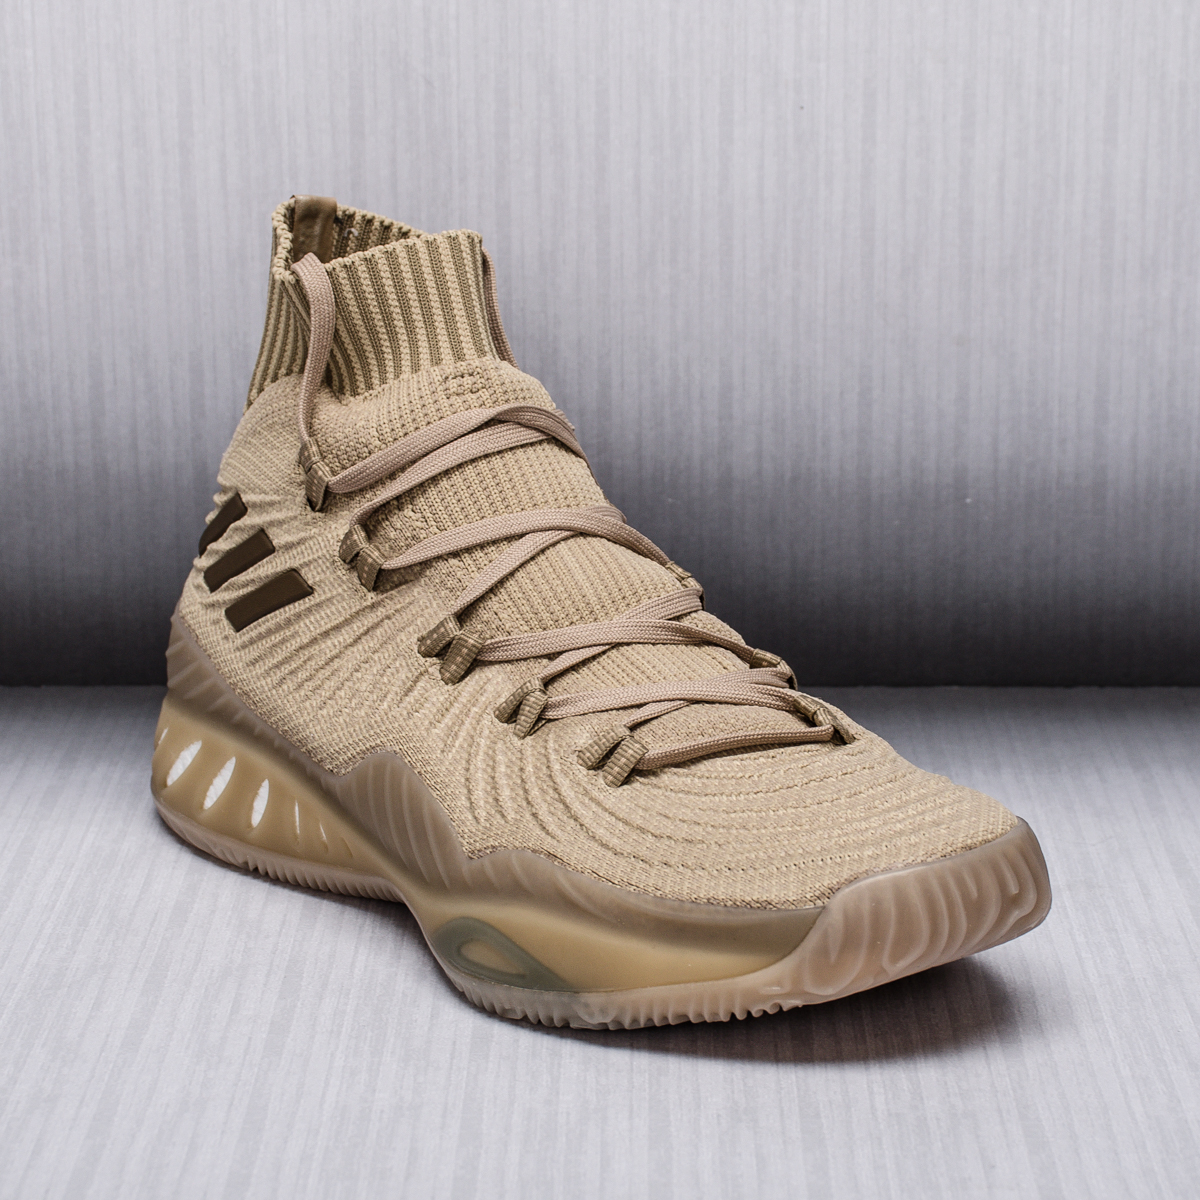 adidas Crazy Explosive 2017 Primeknit Trace Khaki - BASKETBALL SHOES Adidas  Basketball Shoes - Superfanas.lt b306560ed1